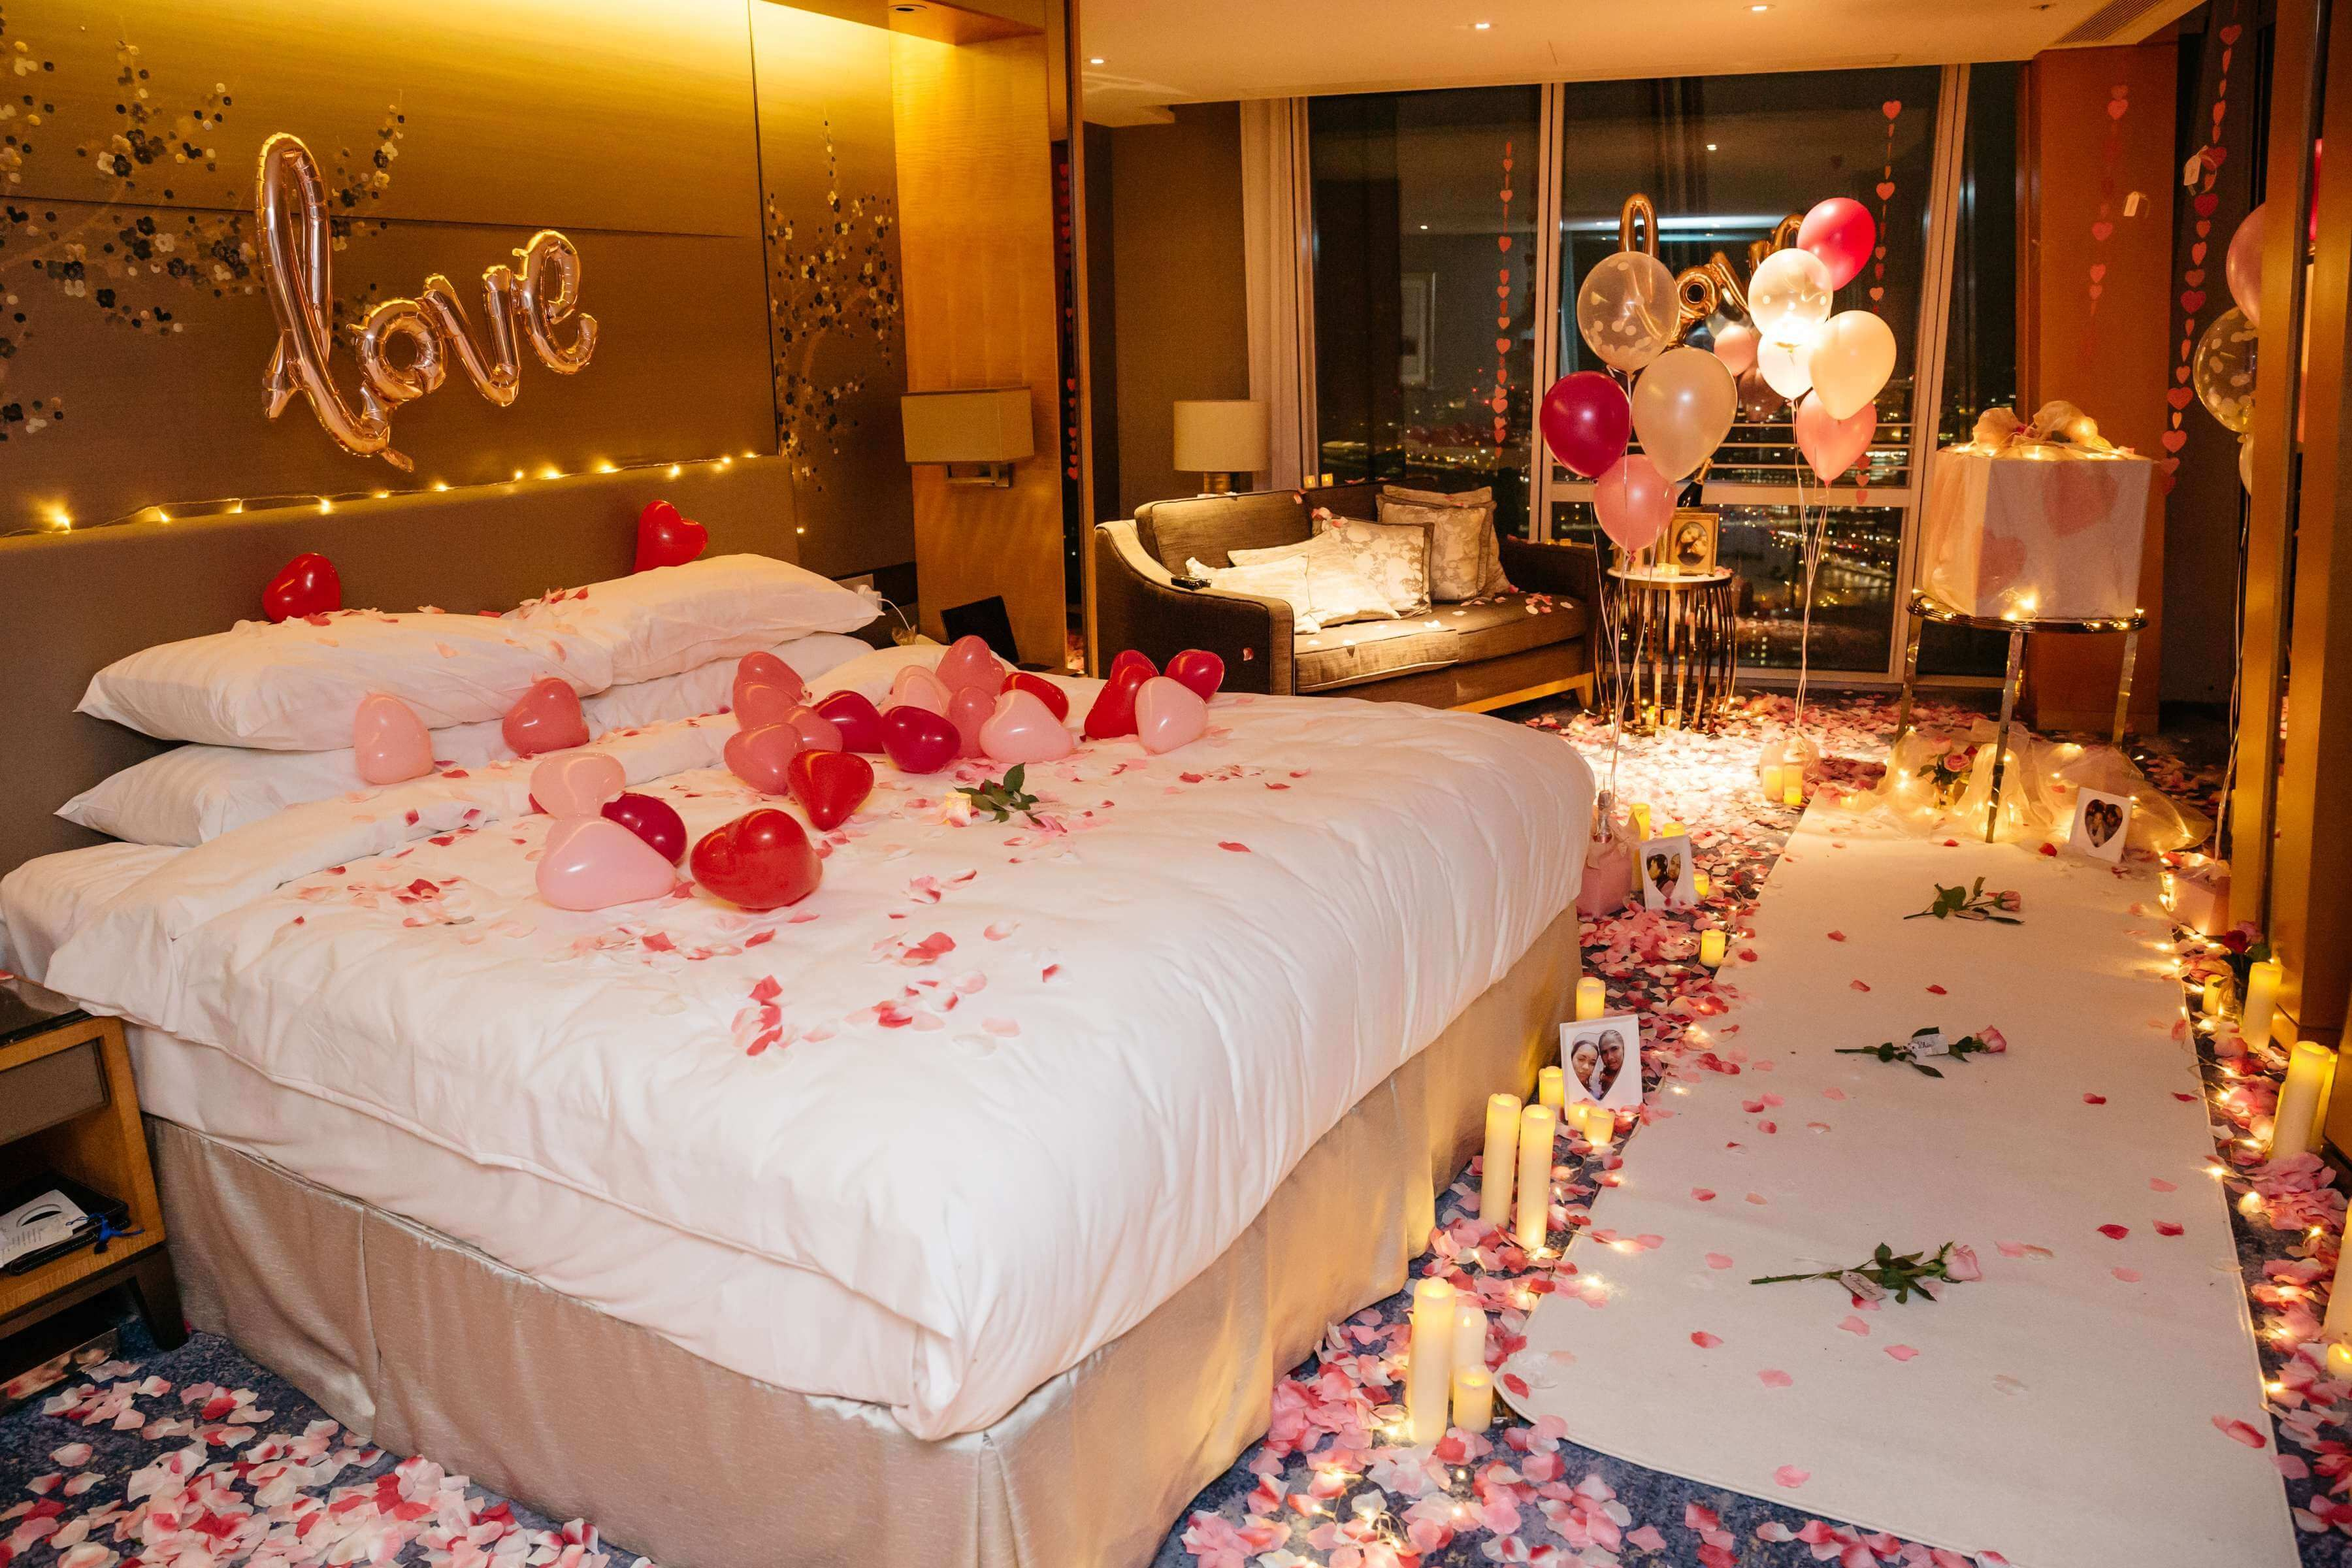 20 Valentine Bedroom Decoration Ideas For Spending Quality Time With Your Love Romantic Room Surprise Valentine Bedroom Decor Romantic Room